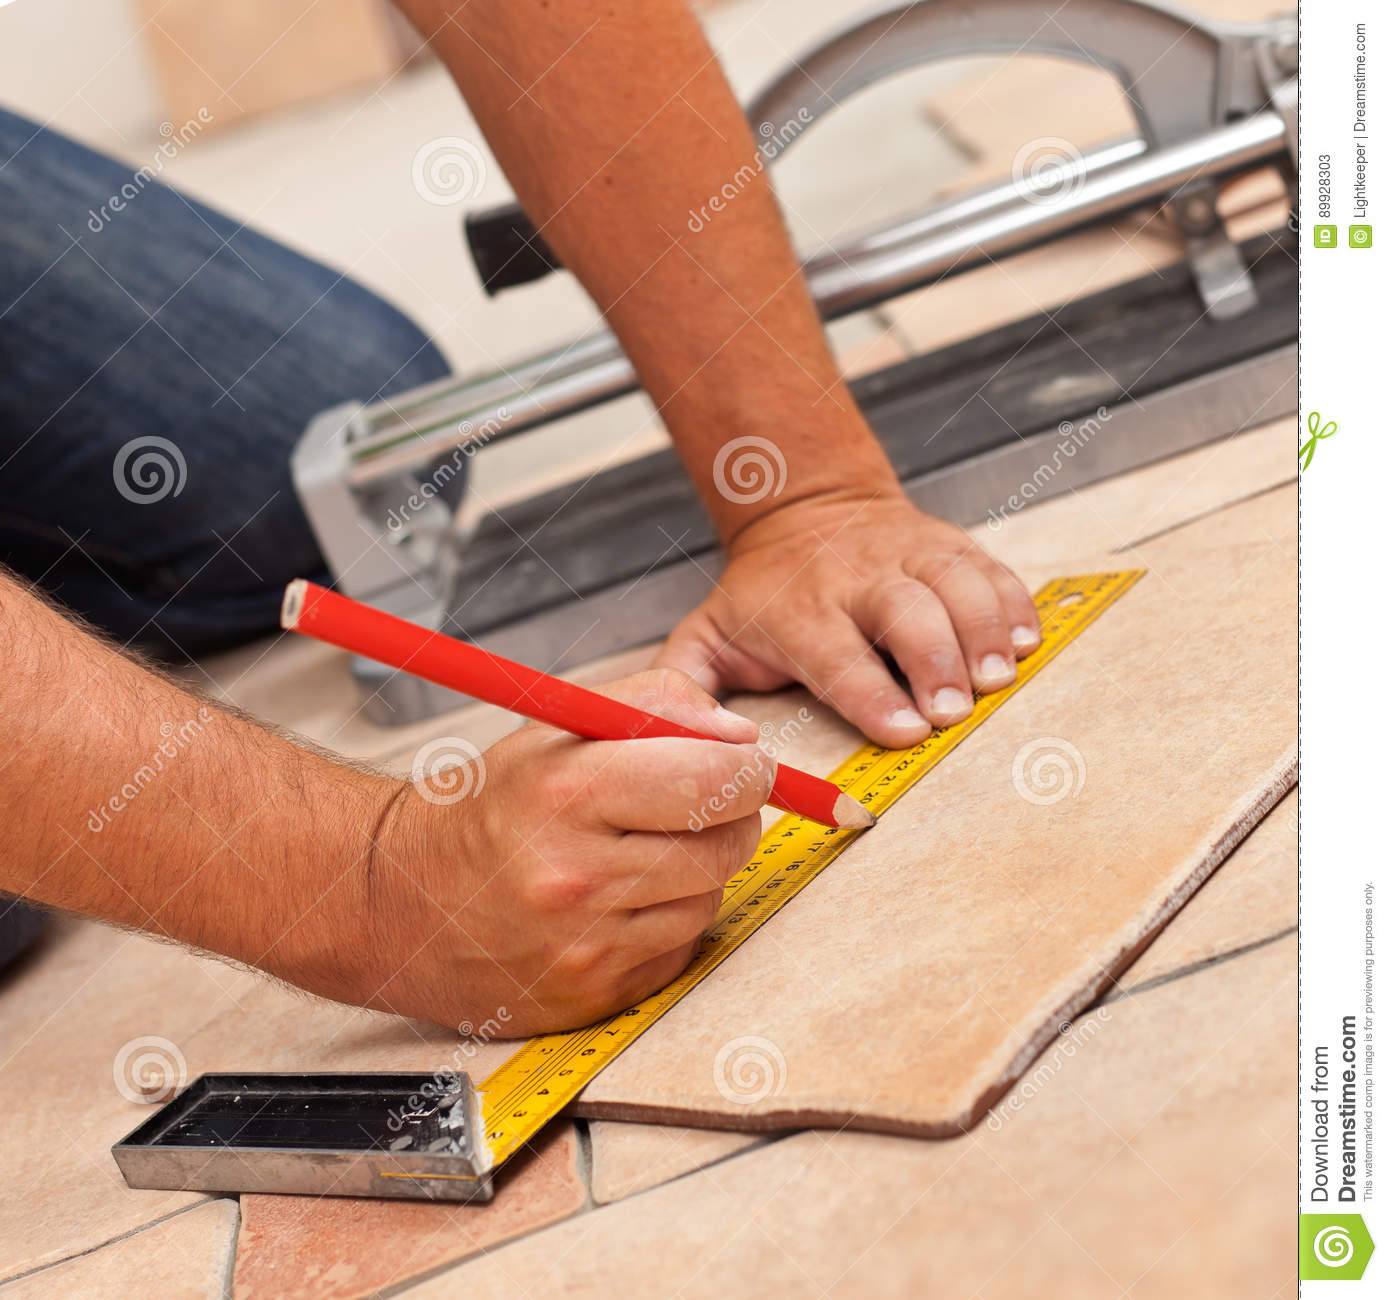 Laying Ceramic Floor Tiles Man Hands Marking Tile To Be Cut C